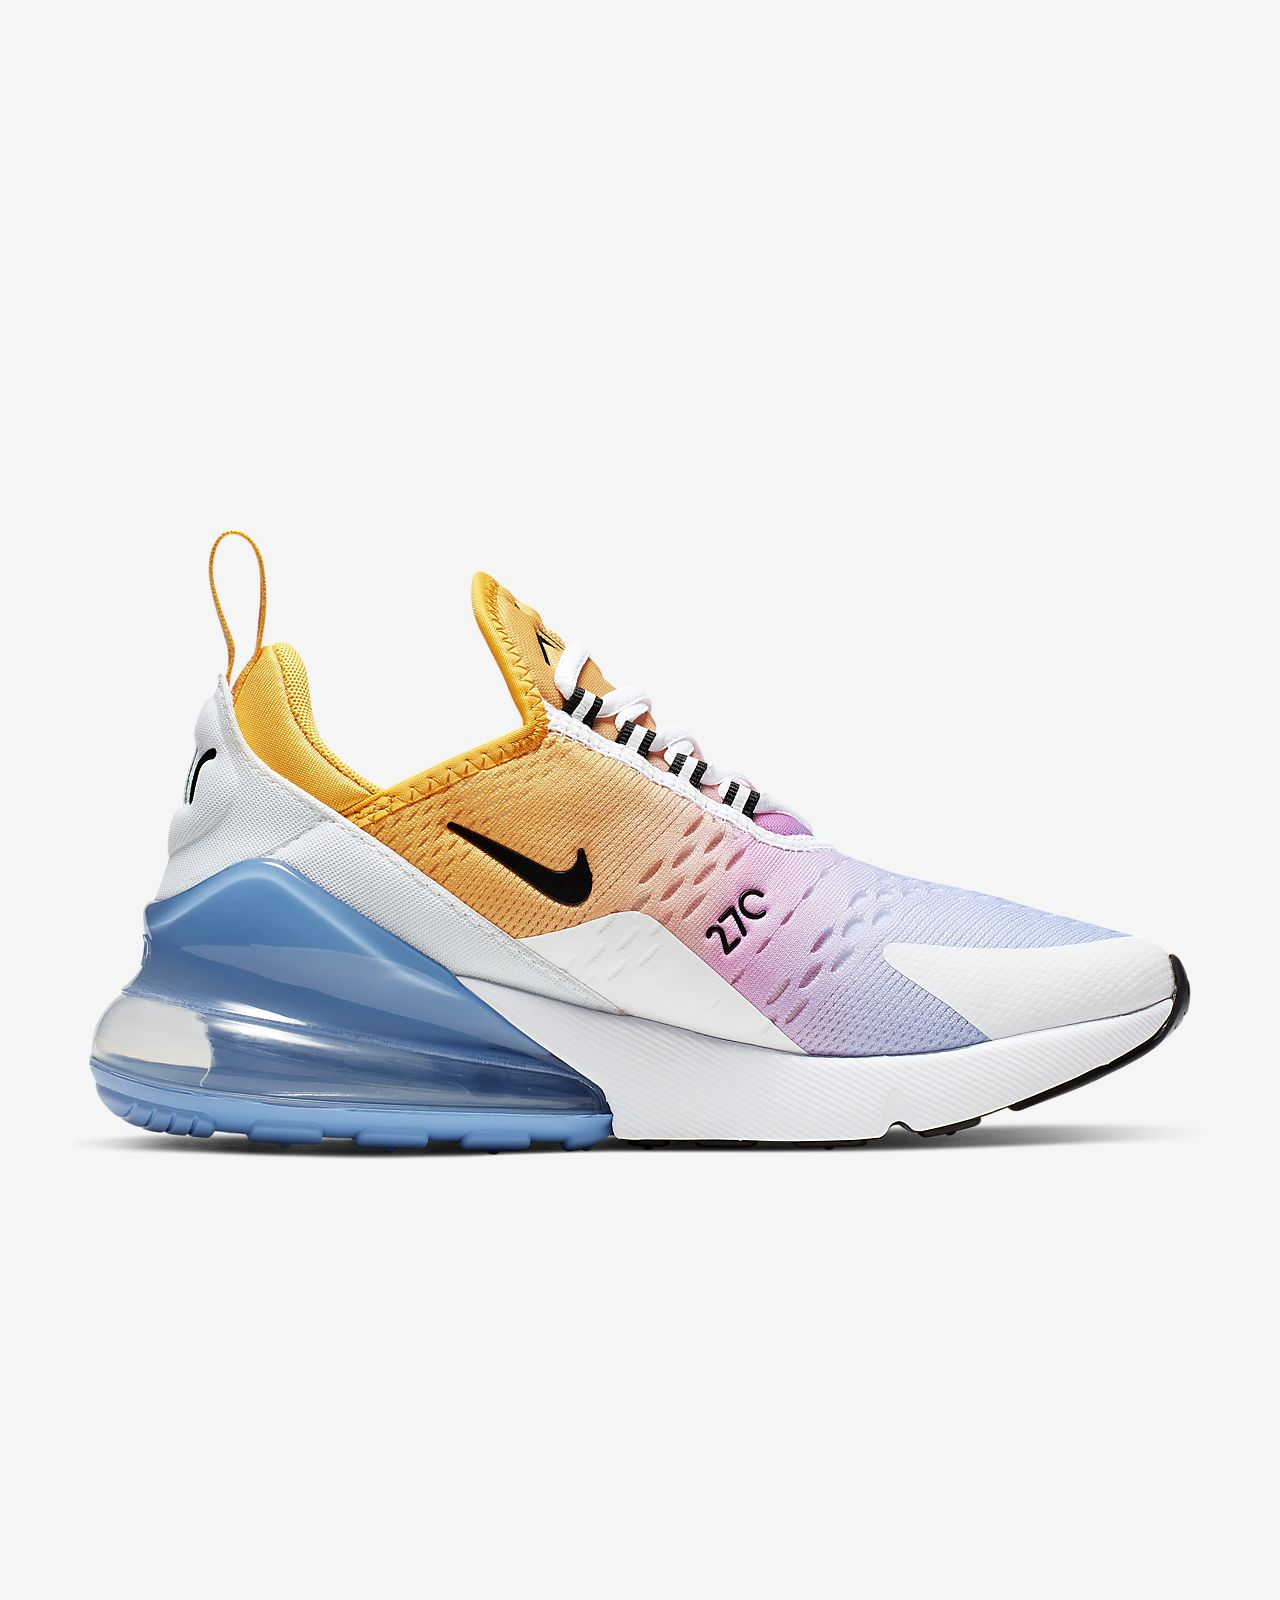 95a7e2bc4e Nike Air Max 270 Women's Shoe. Nike.com